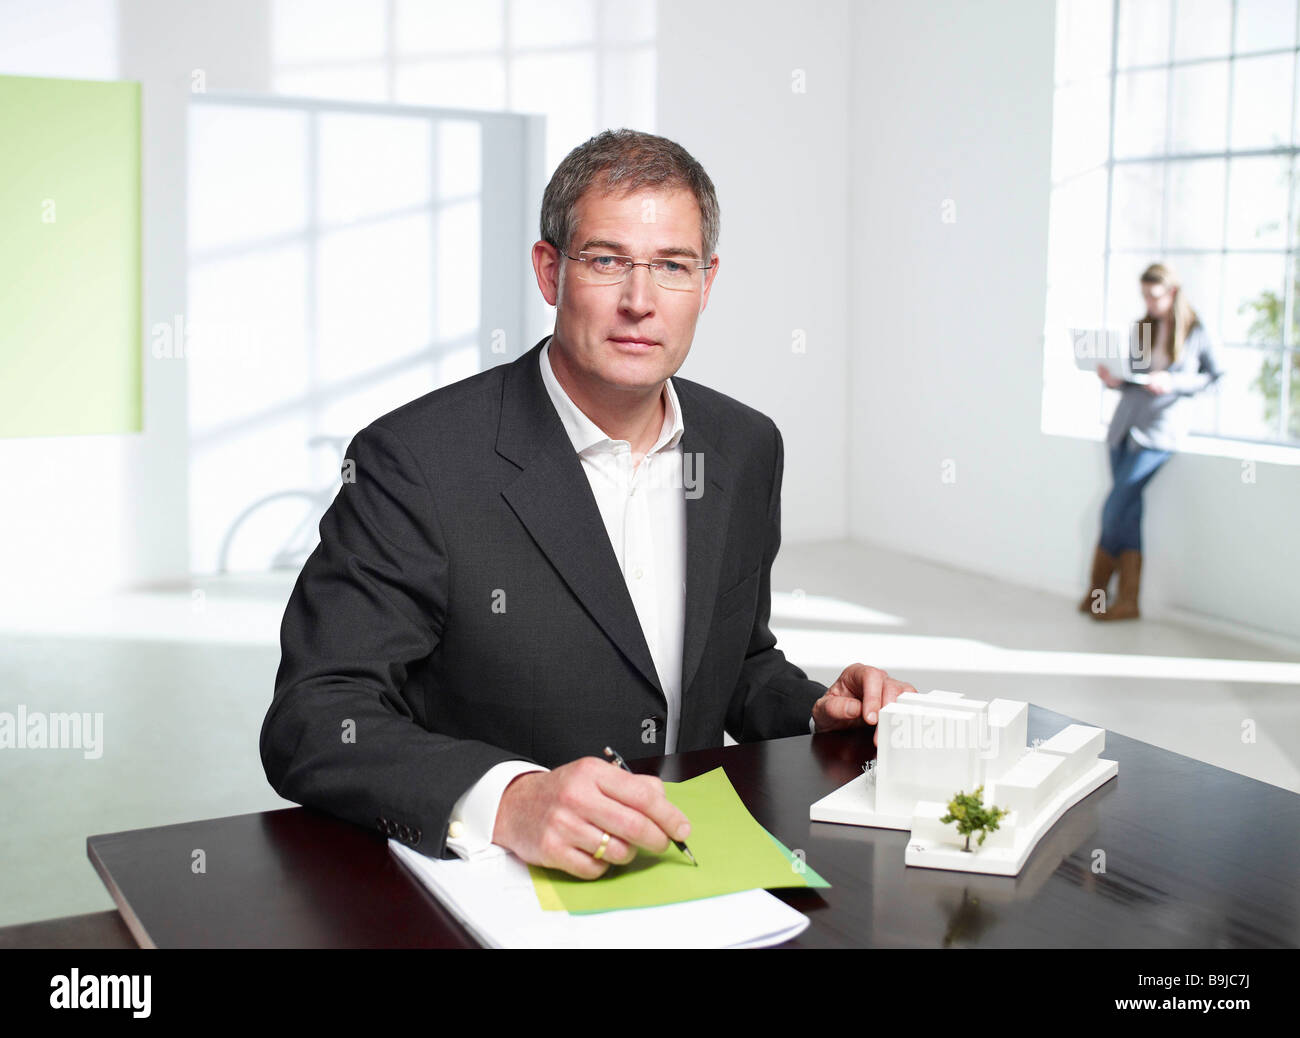 Architect at work in loft office - Stock Image